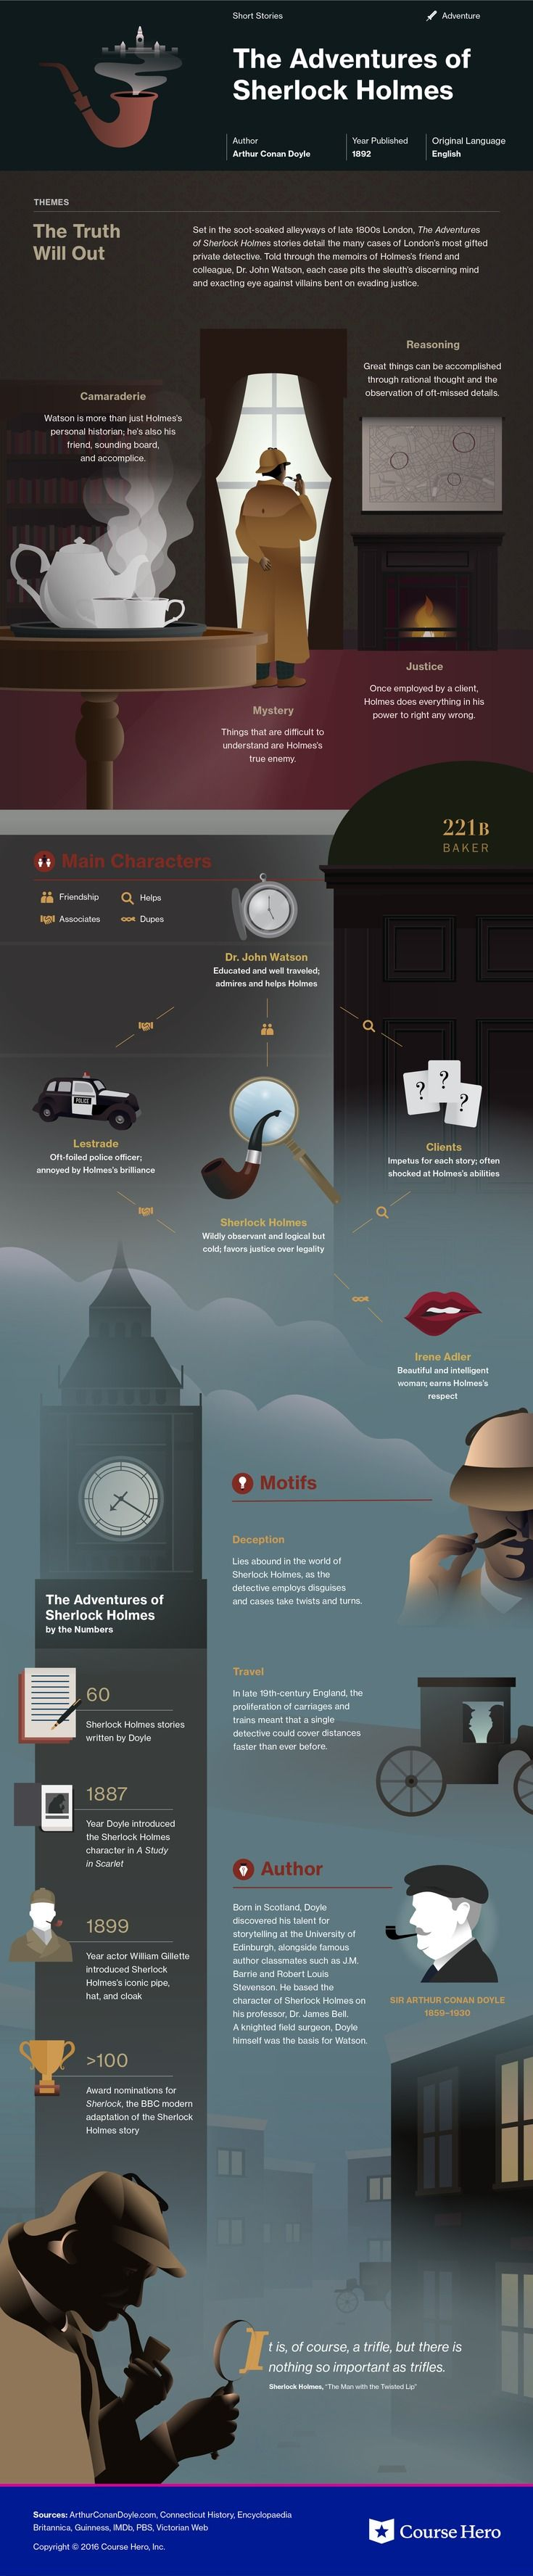 The Adventures of Sherlock Holmes | Course Hero Infographic